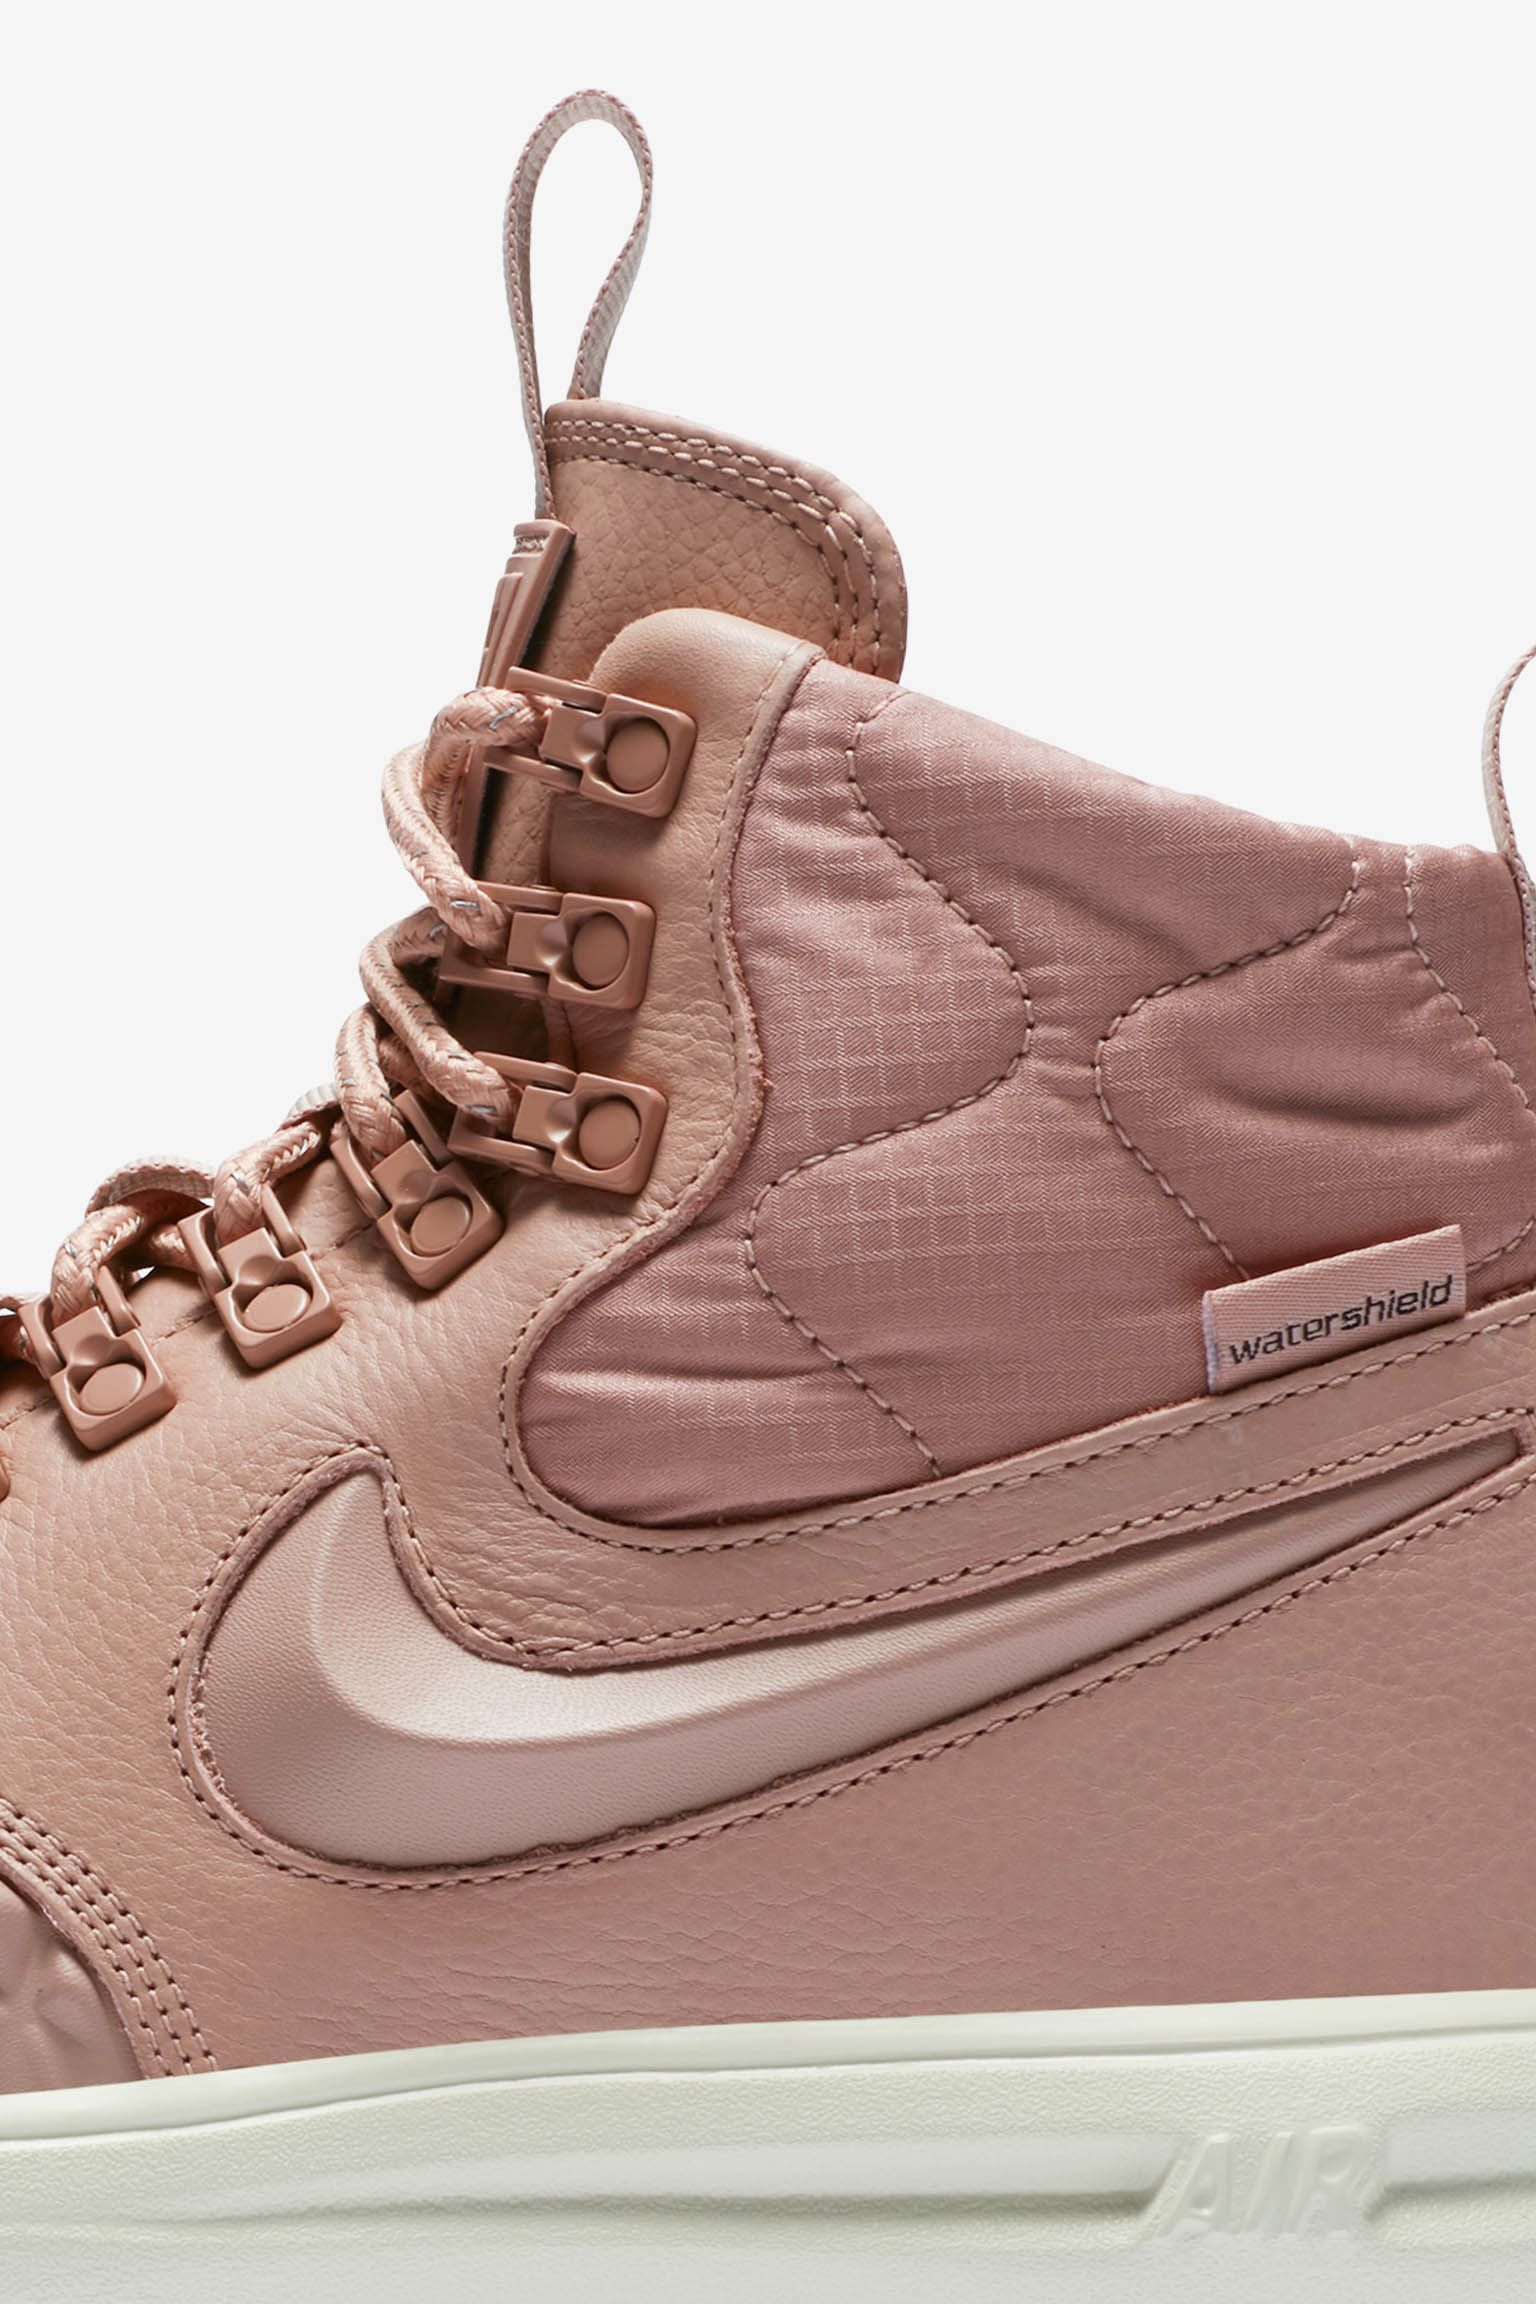 59f5e4a3c6a1 ... Women s Nike Lunar Force 1 Duckboot Particle Pink .